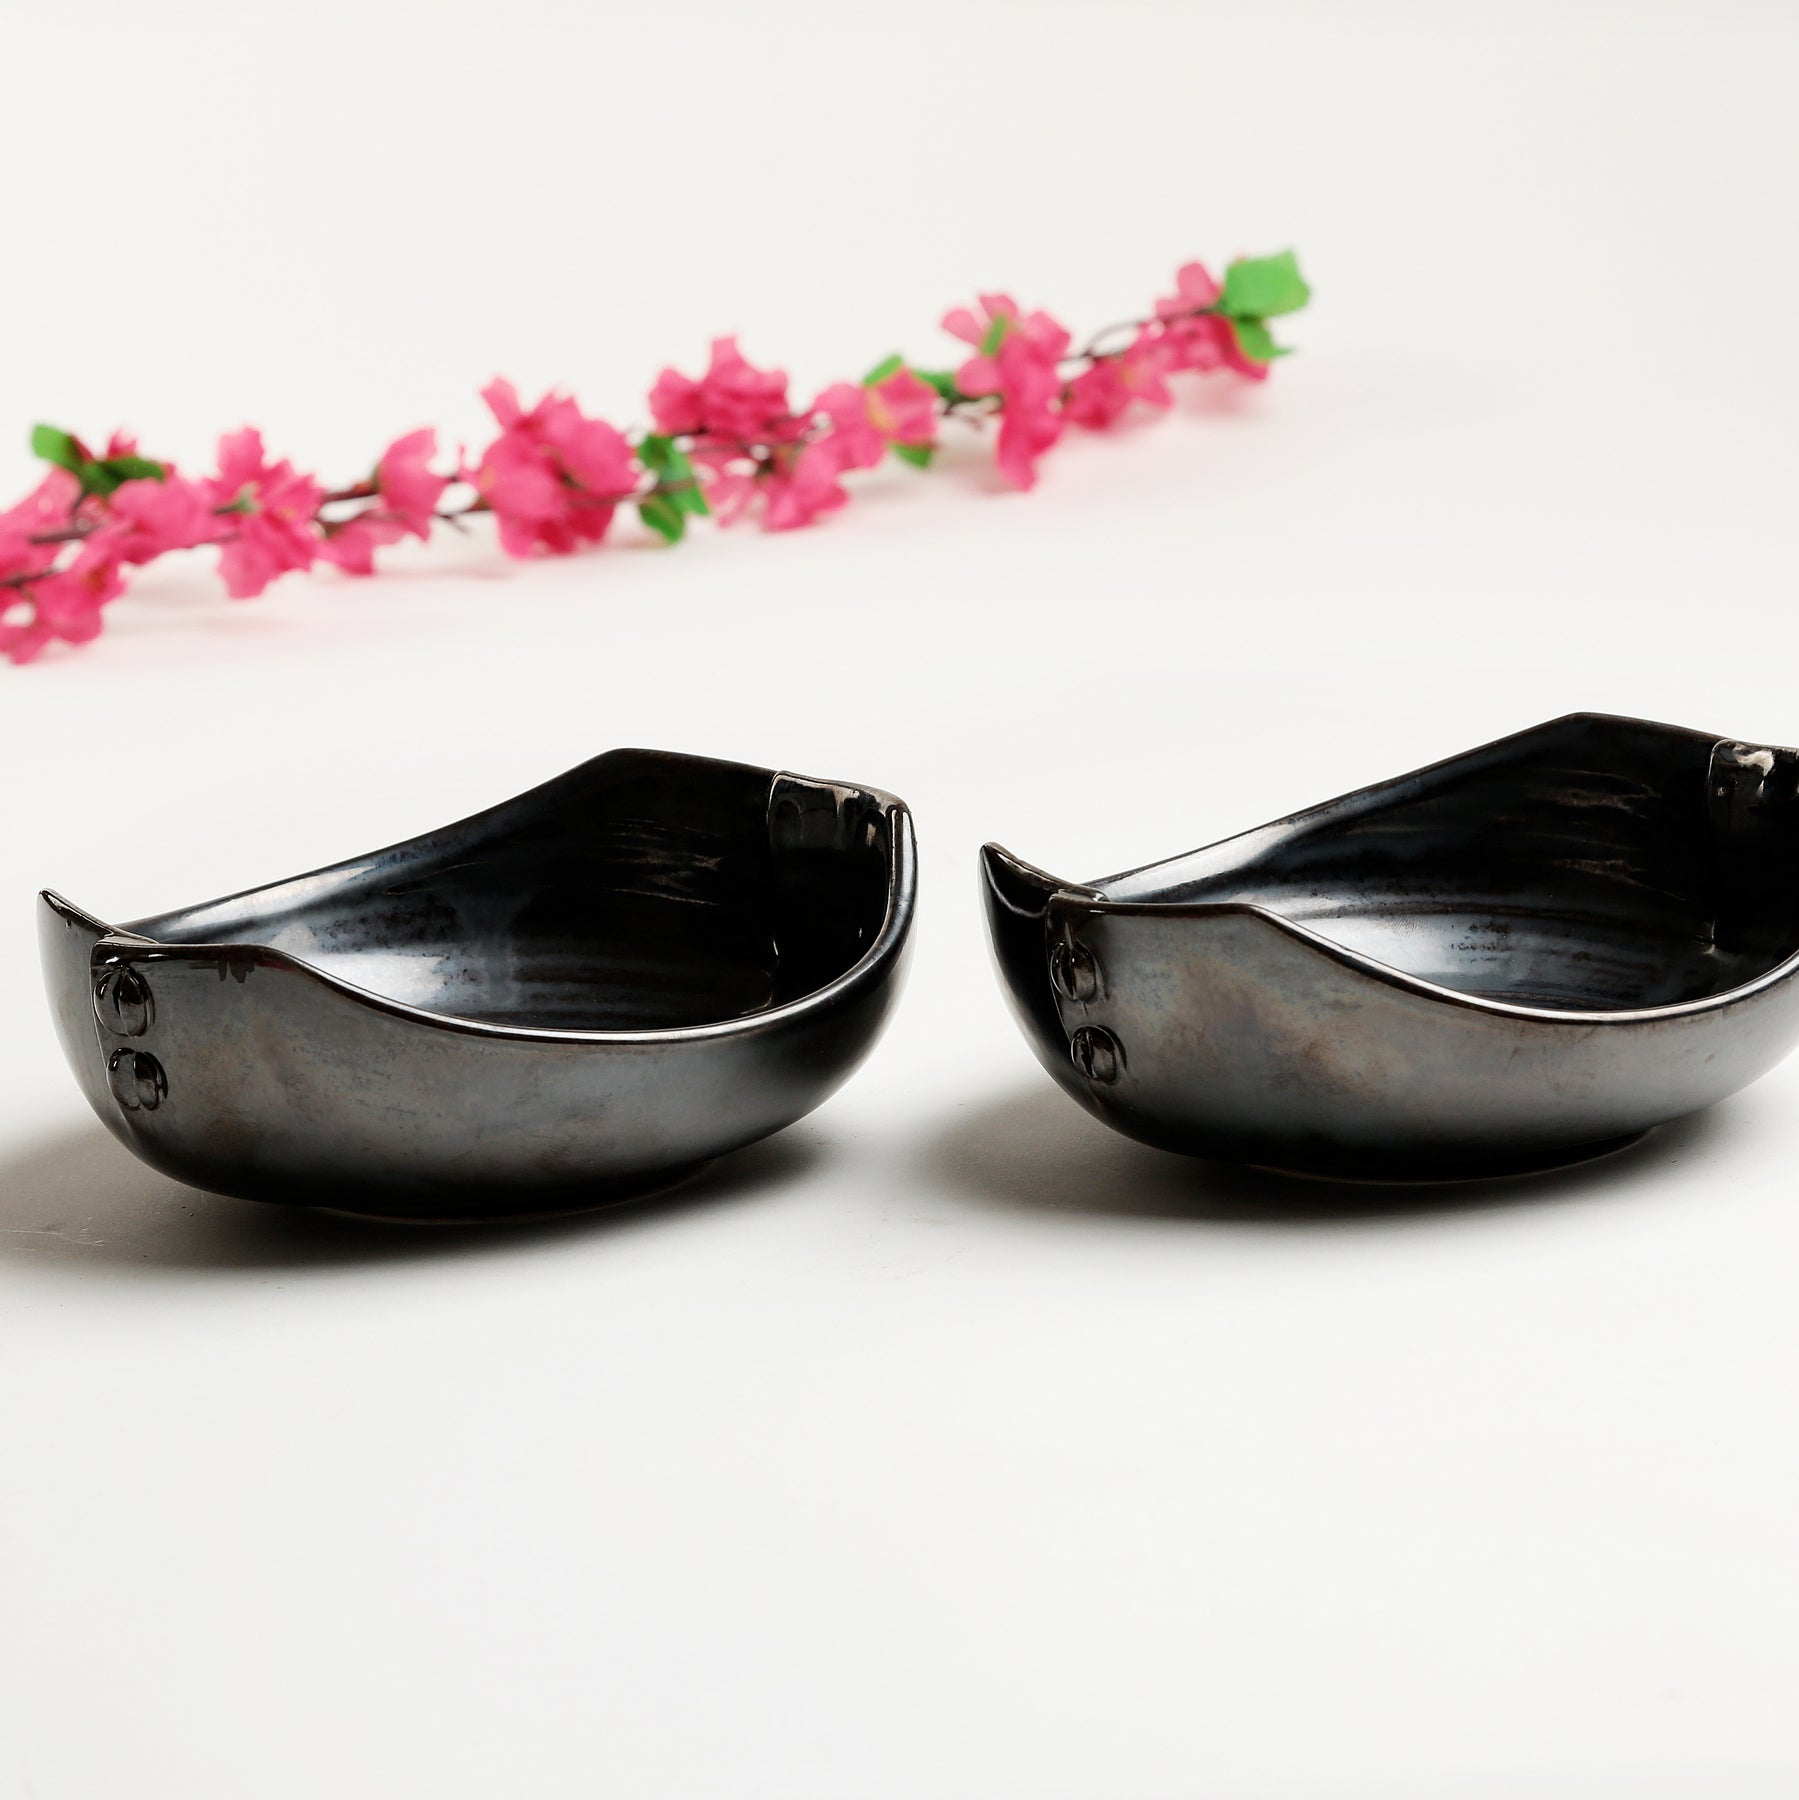 Metallic Ciac Bowls - Set of 2